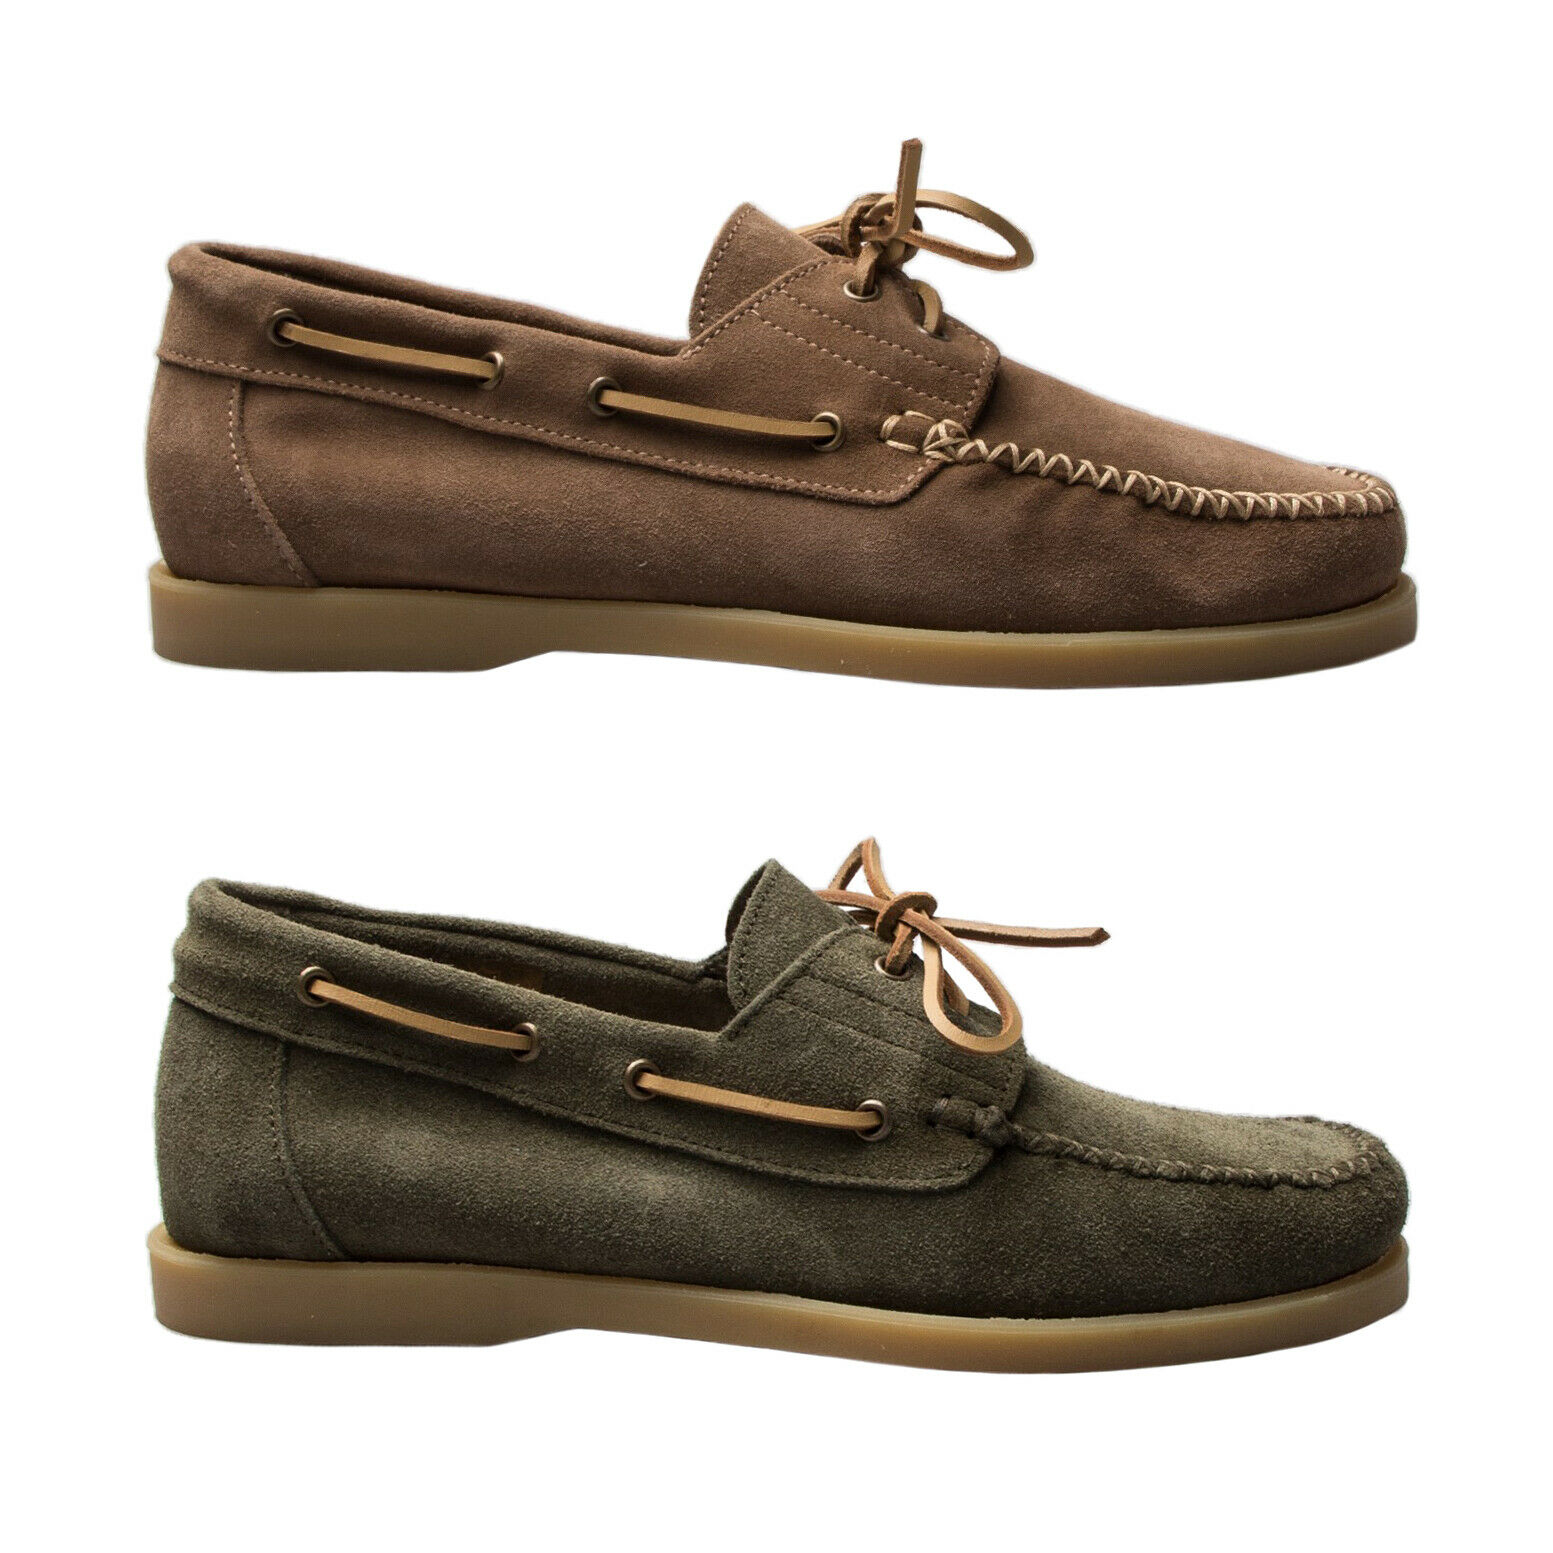 MAZE men's shoe unlined with laces mod ADELMO VELOUR 100% leather MADE IN ITALY